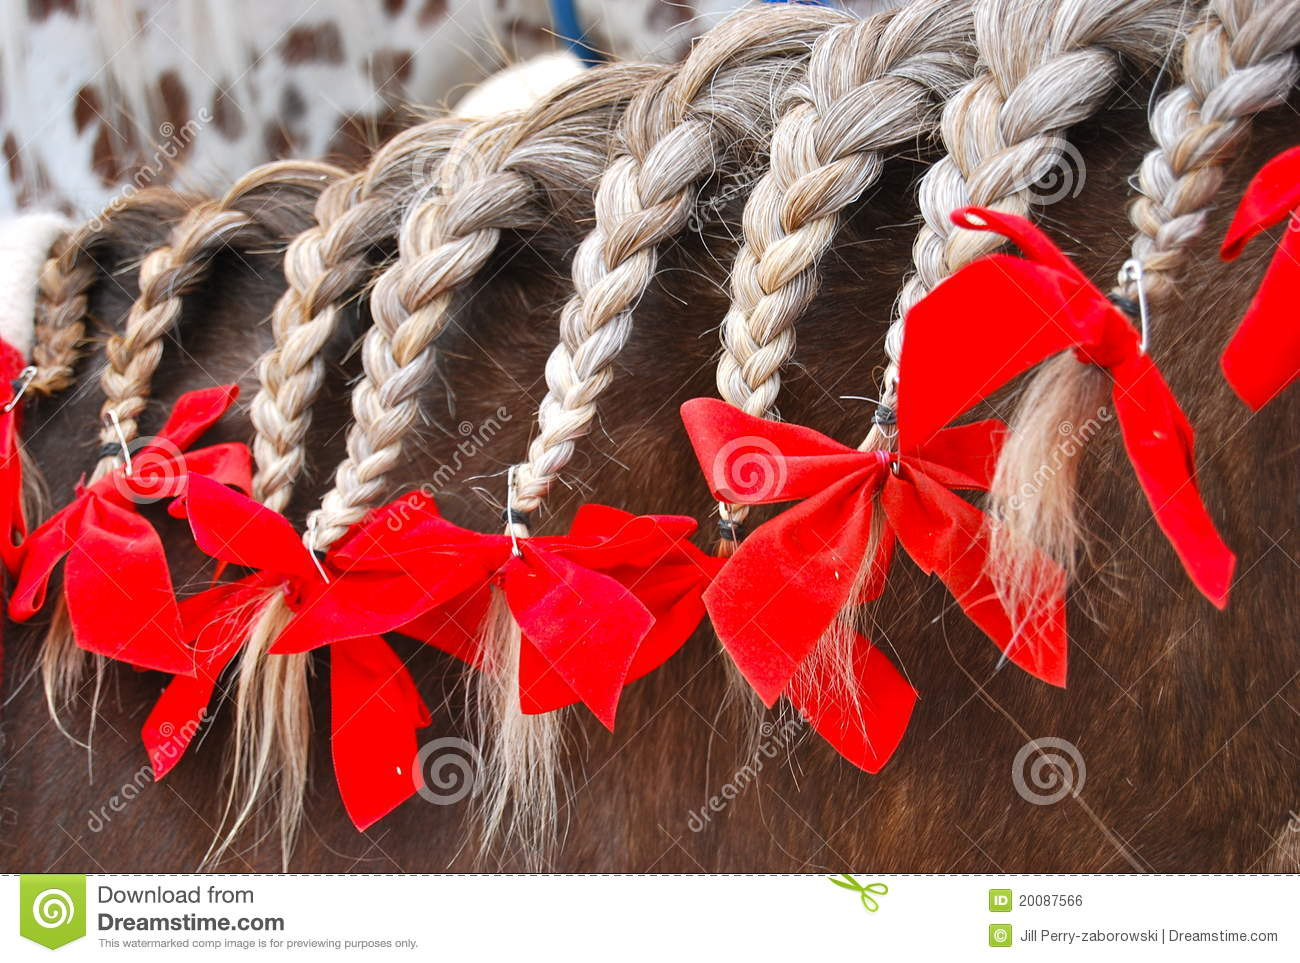 Braided Horse Mane With Red Bows Stock Photo - Image of farm